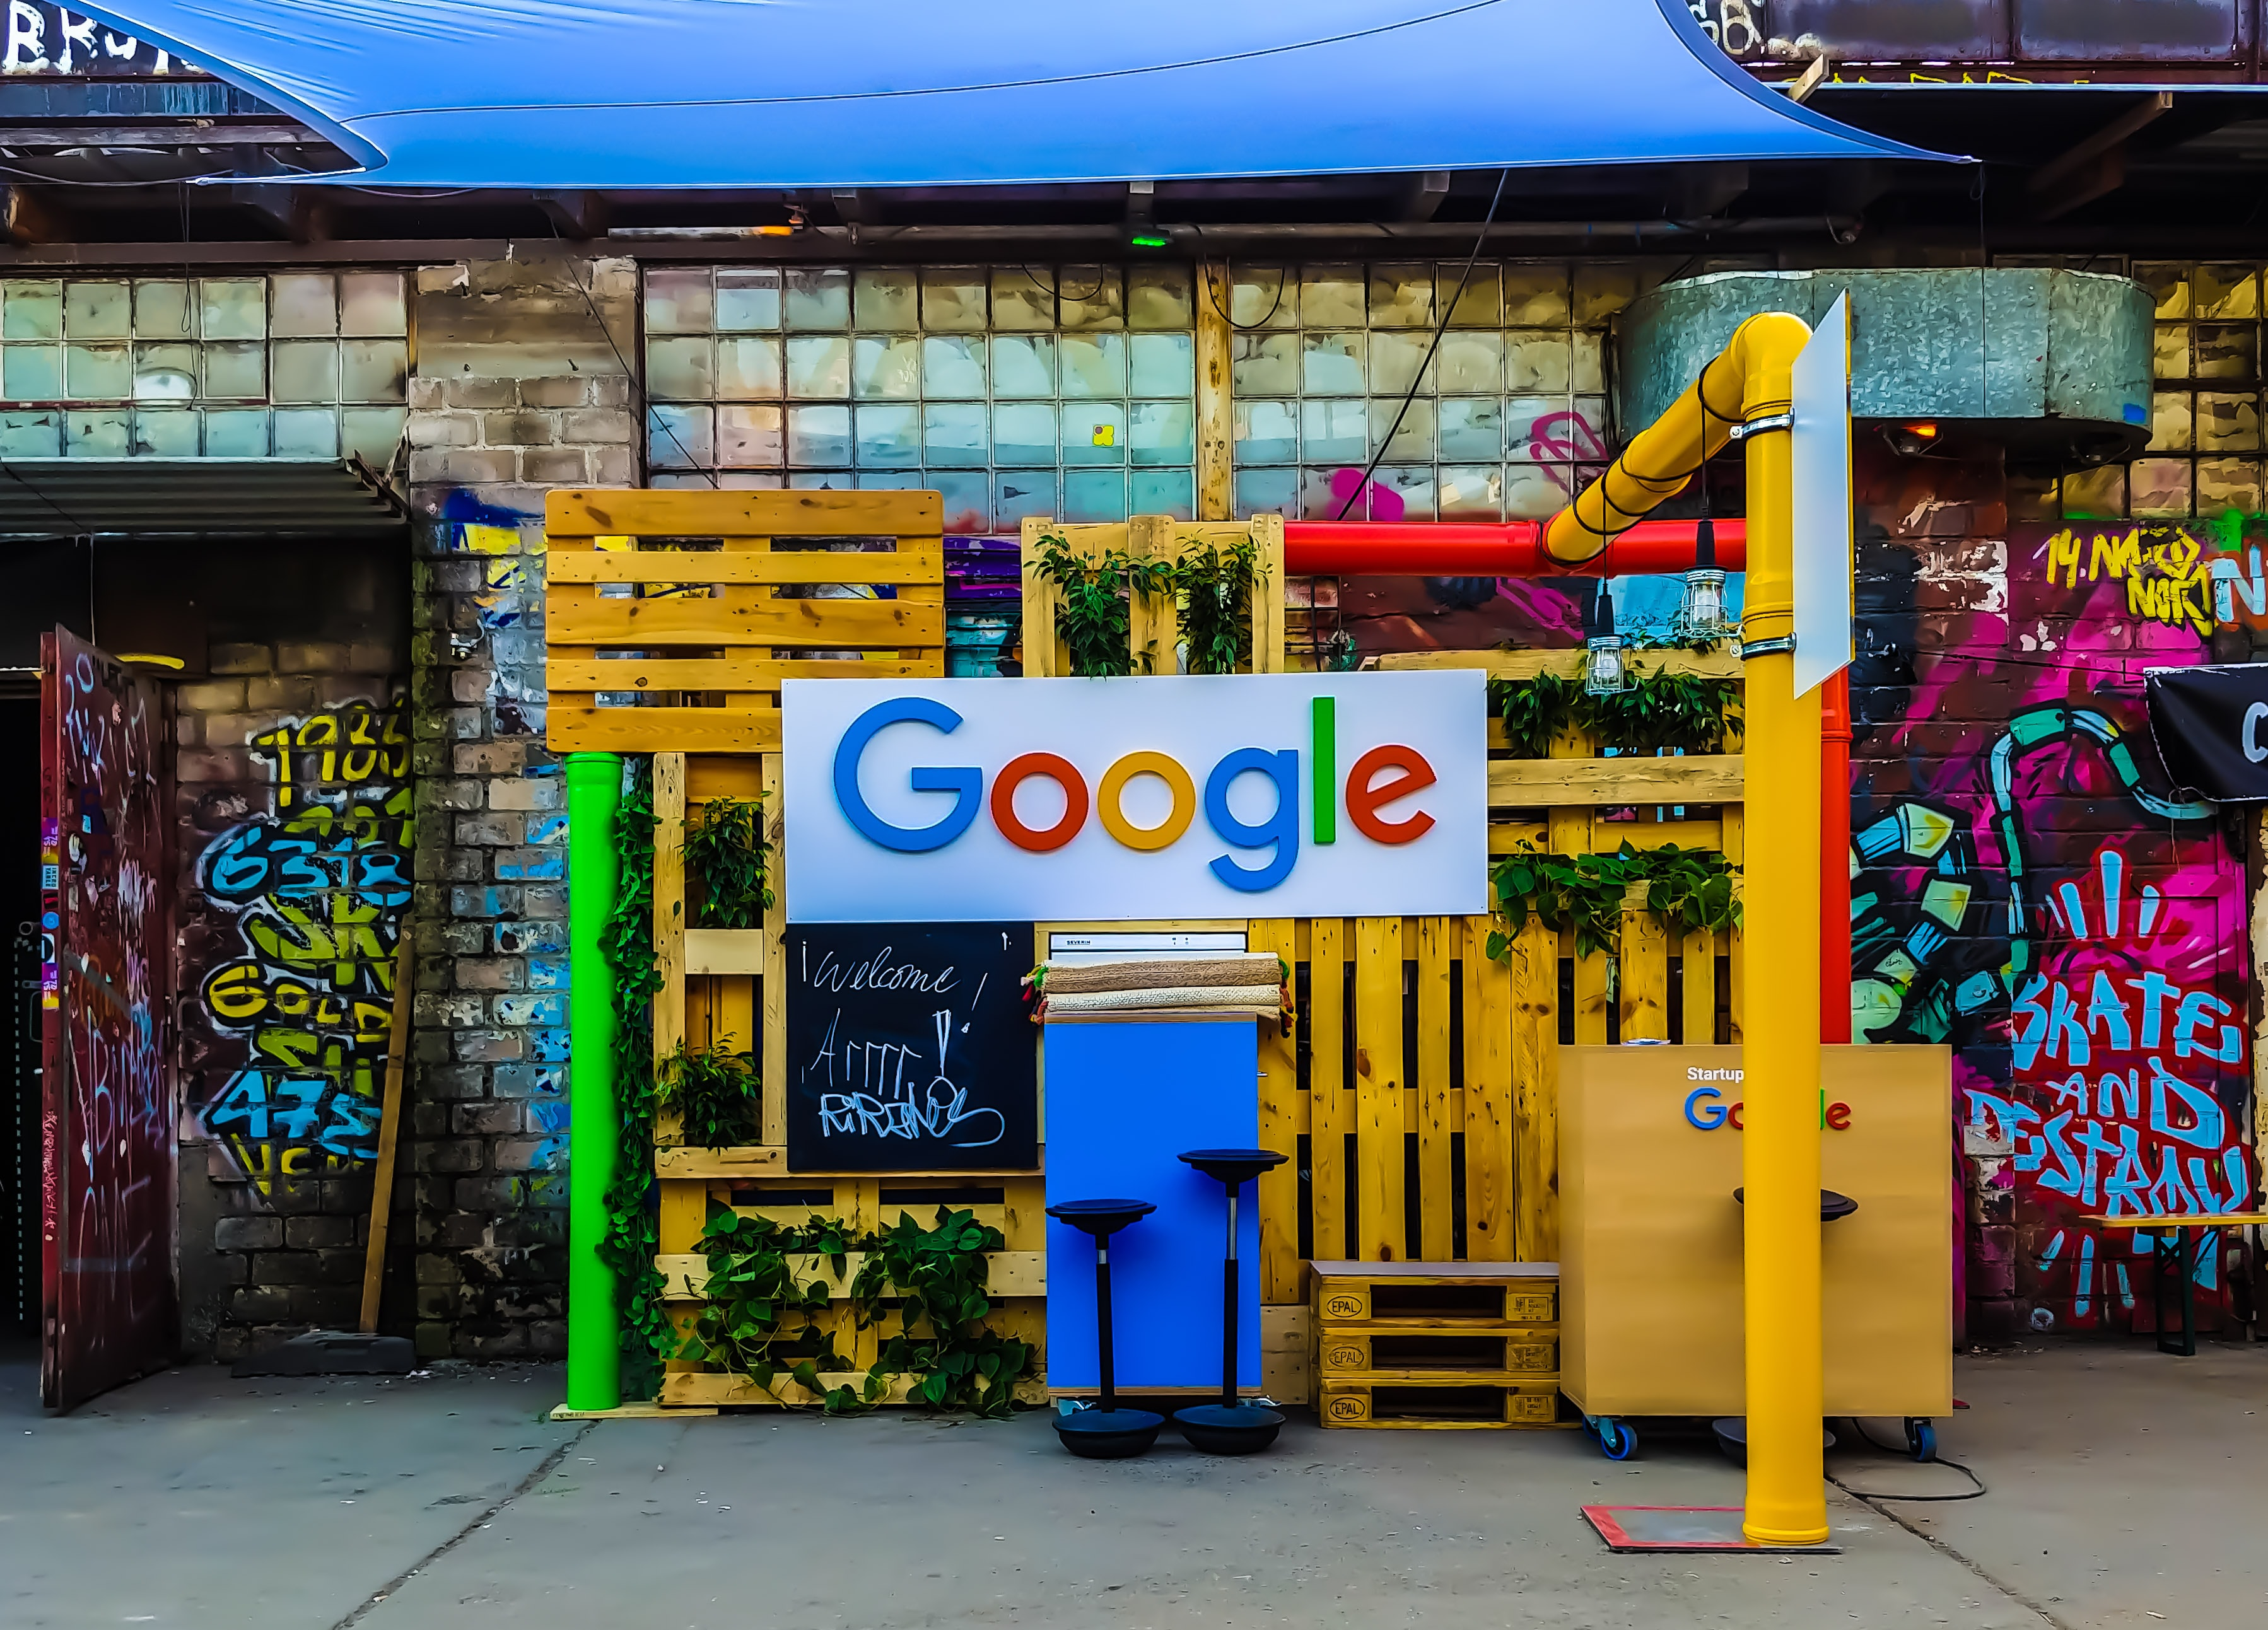 A booth with a Google sign